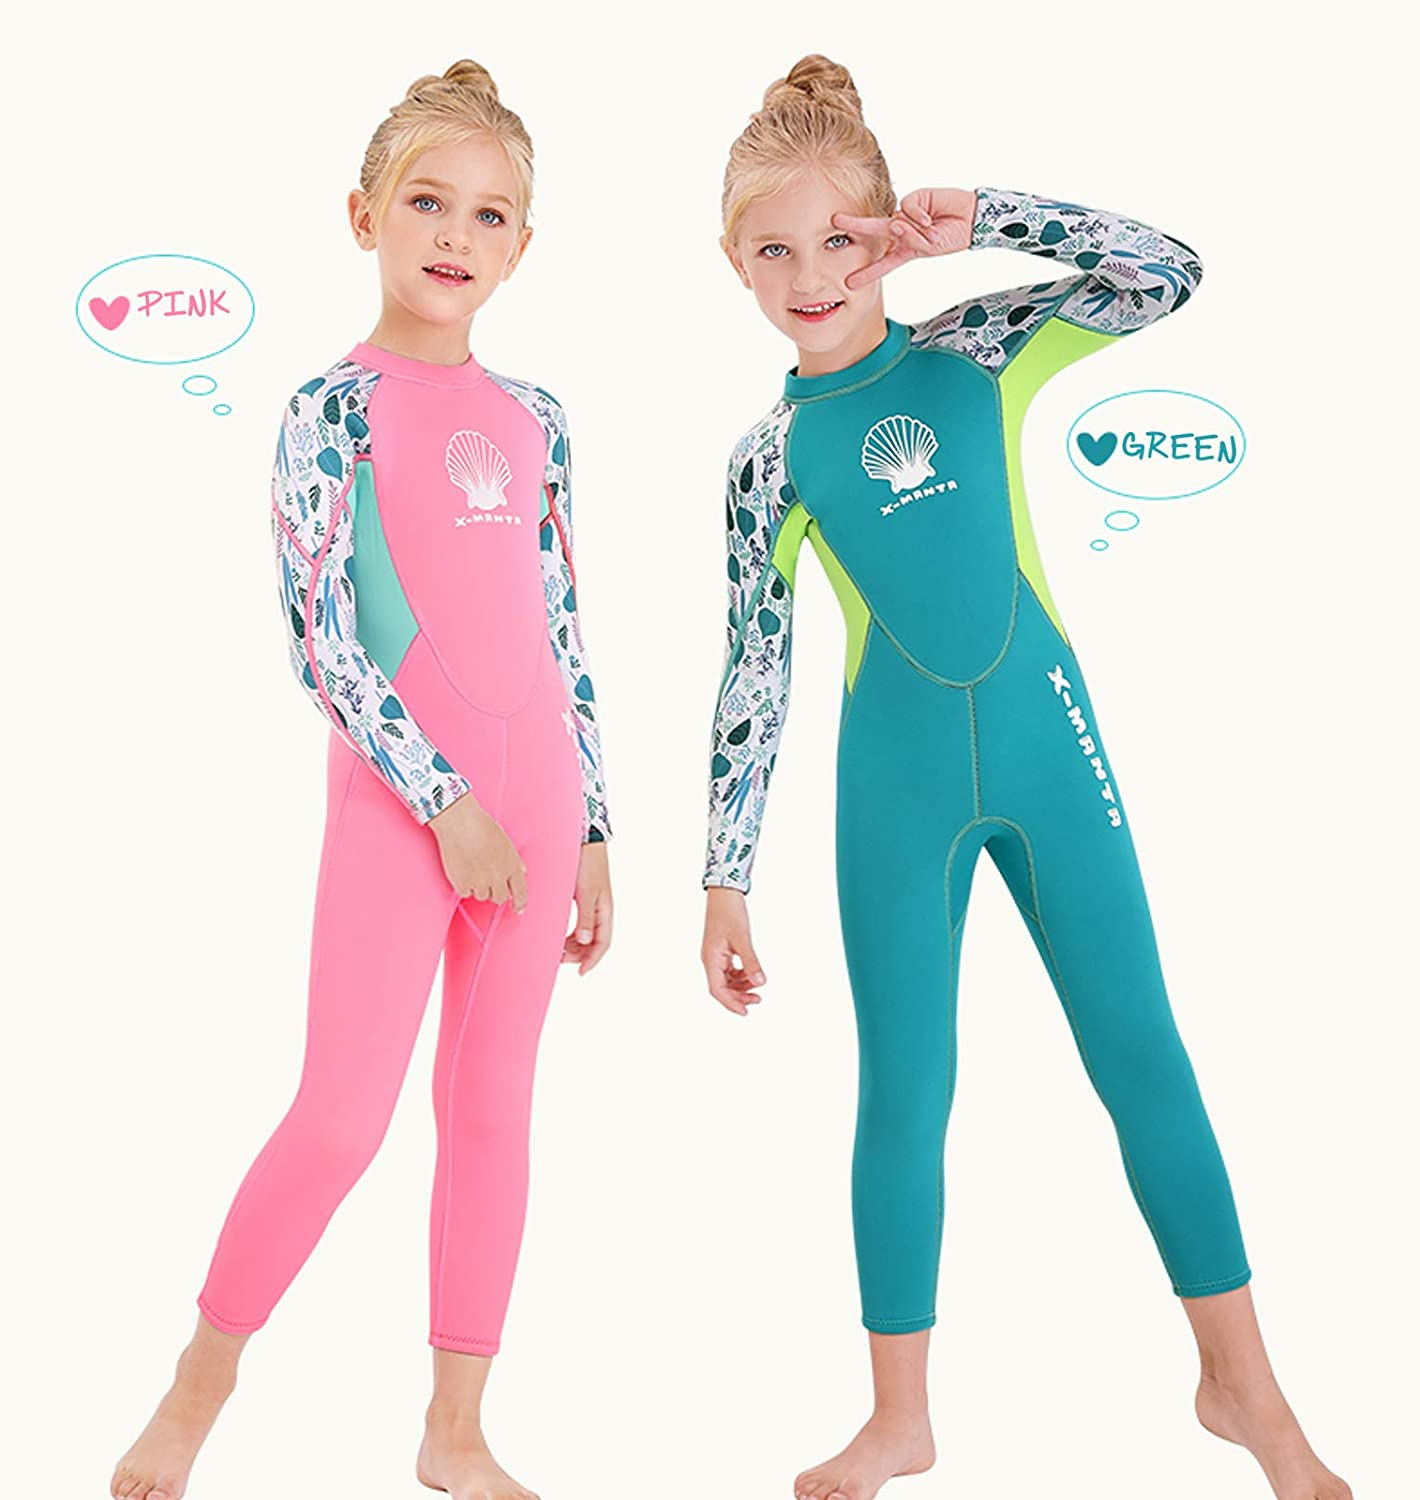 OUTYFUN Wetsuit Kids Boys Girls 2.5mm Neoprene One Piece Thermal Swimsuit Full Long Sleeve Wet Suits for Toddler Child Junior Youth Swim Surf Dive